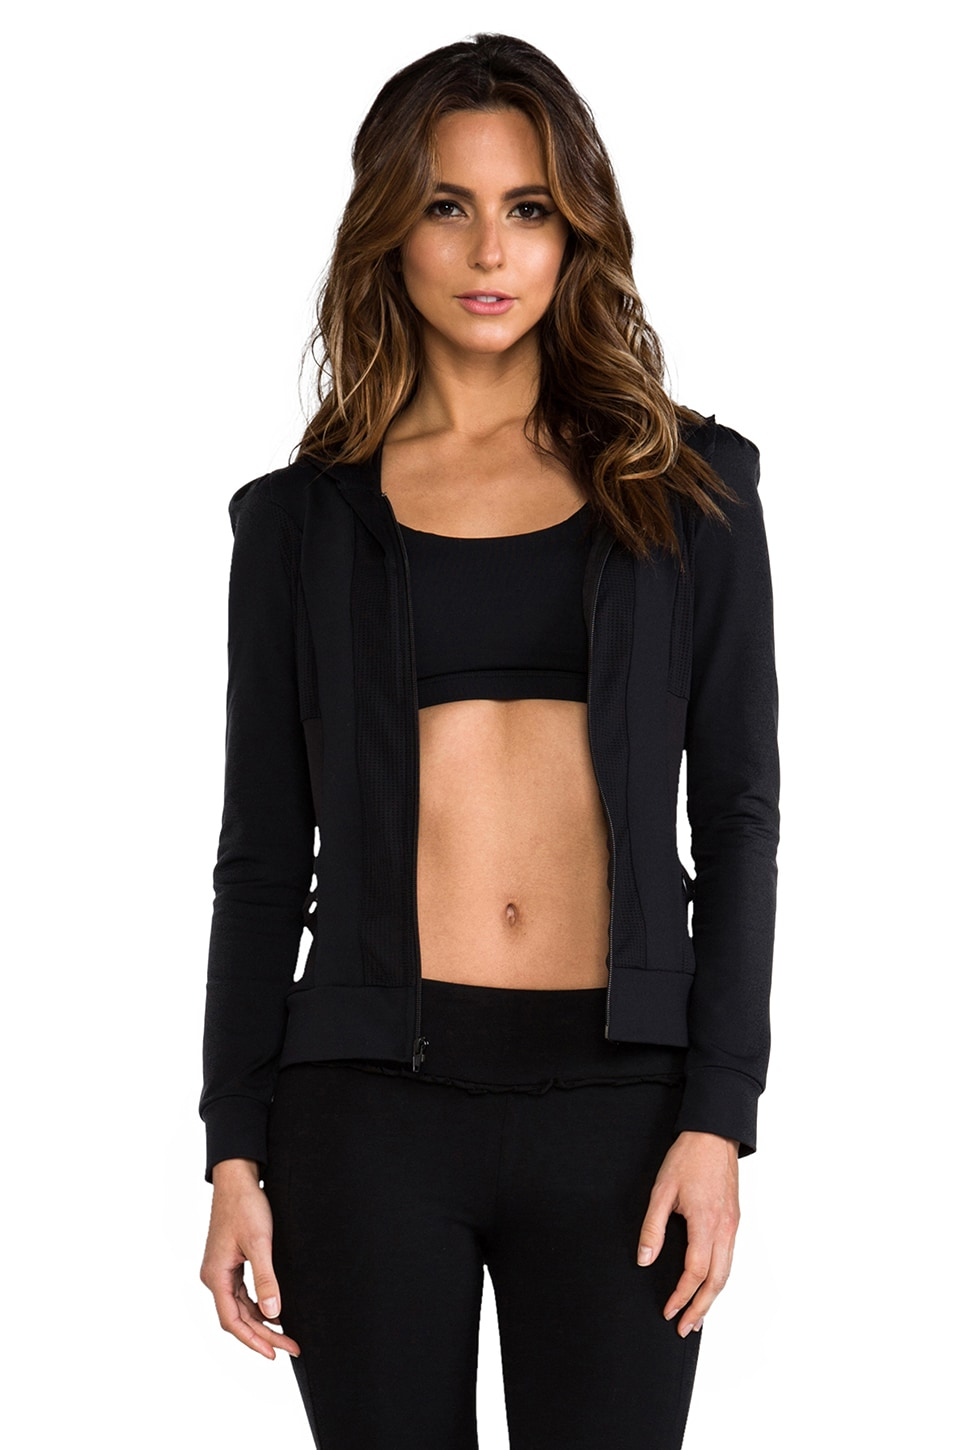 SOLOW Eclon Puff Sleeve Jacket in Black